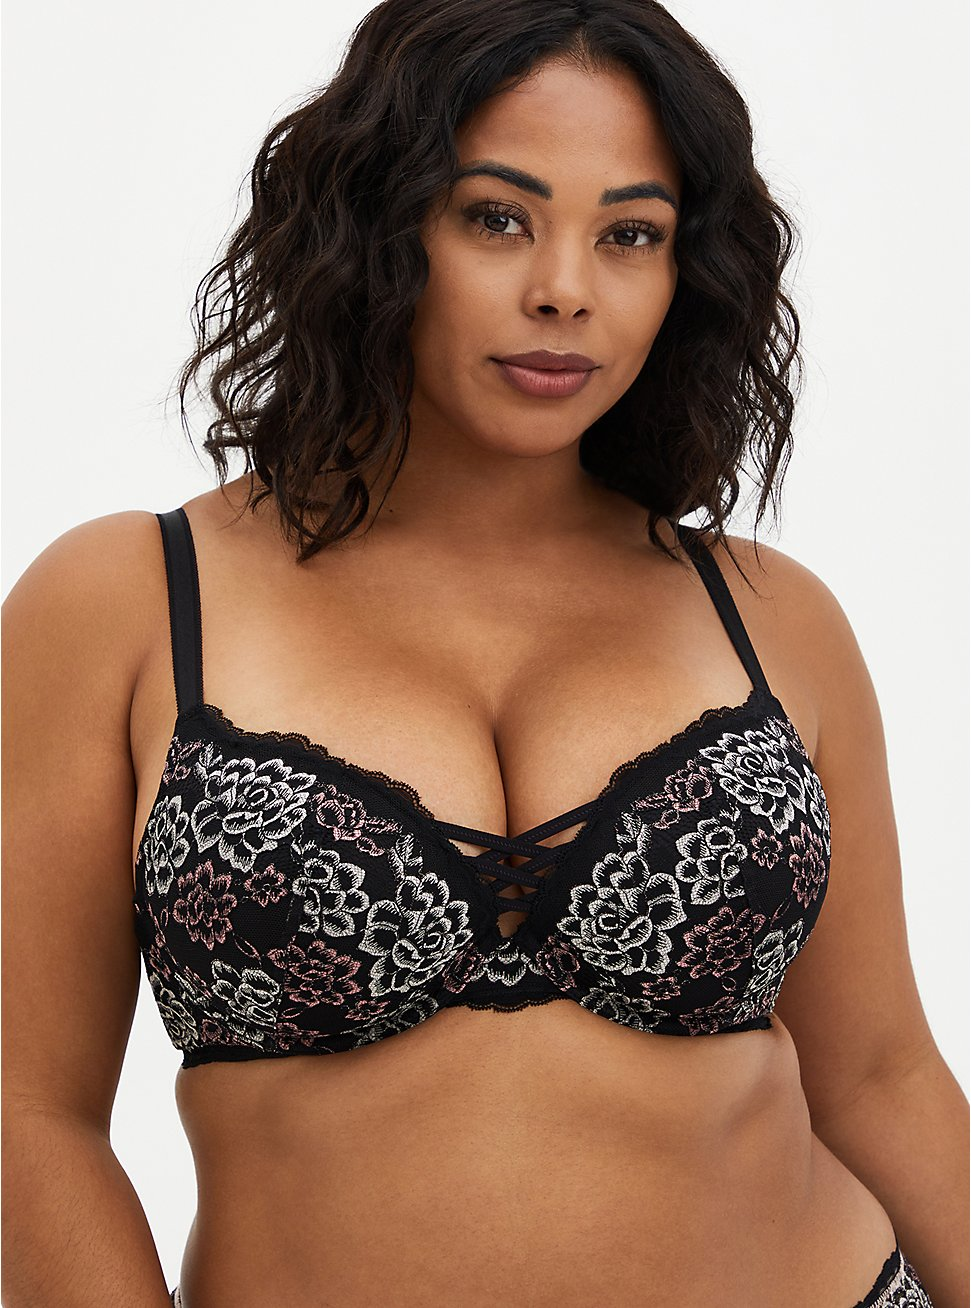 Plus Size XO Push-Up Plunge Bra - Lace Black & Pink Floral with 360° Back Smoothing™, , hi-res